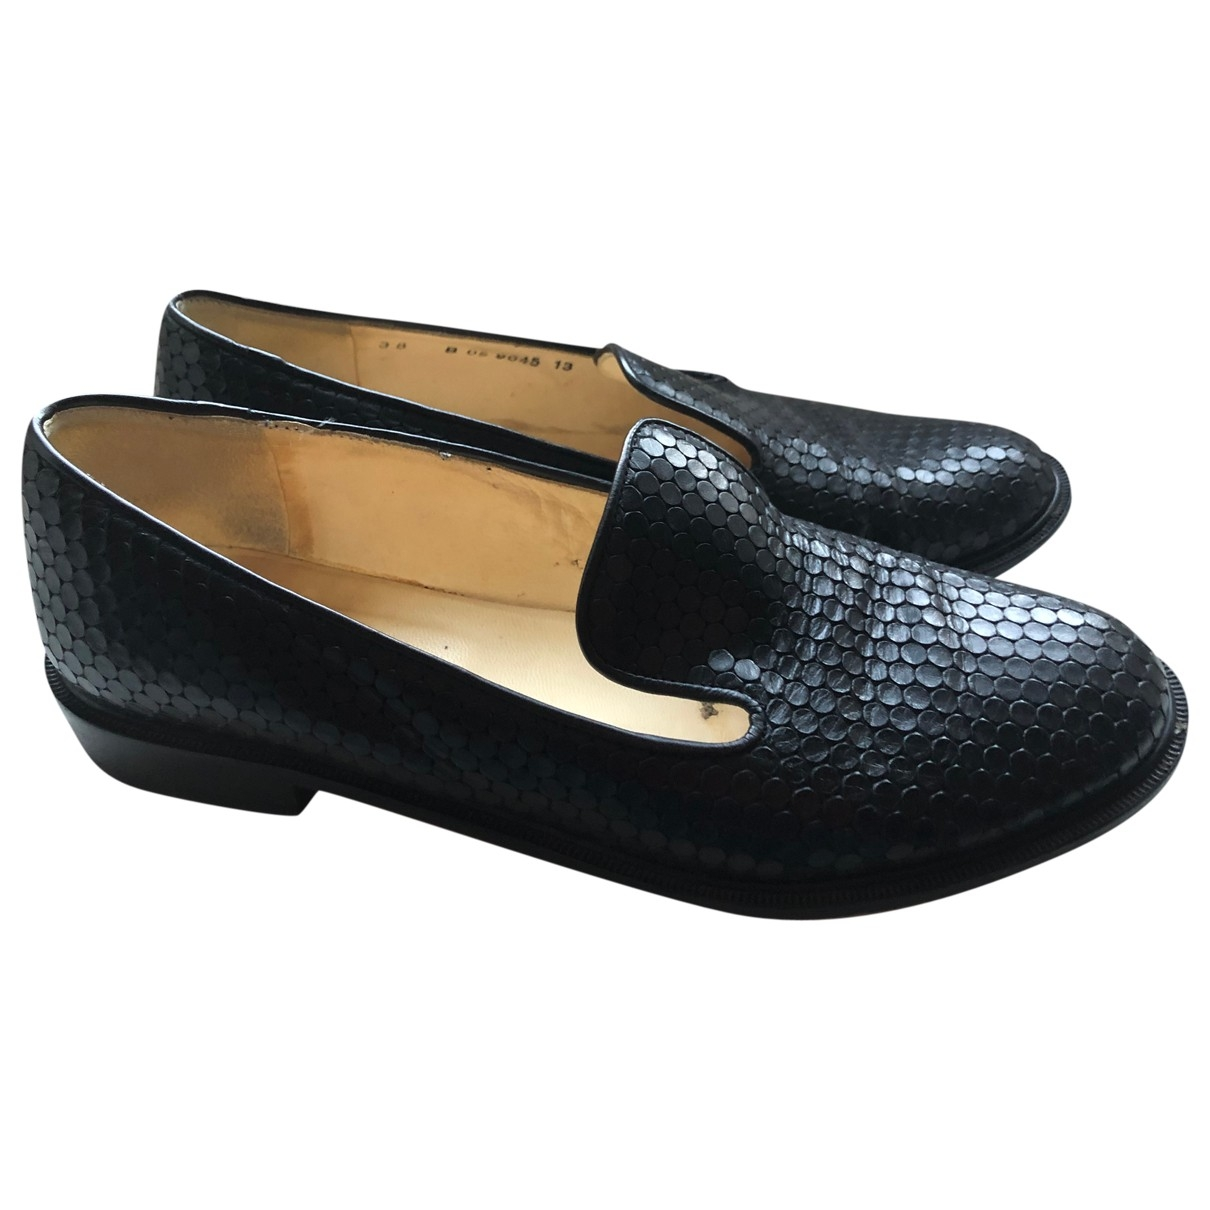 Robert Clergerie \N Black Leather Flats for Women 38 IT